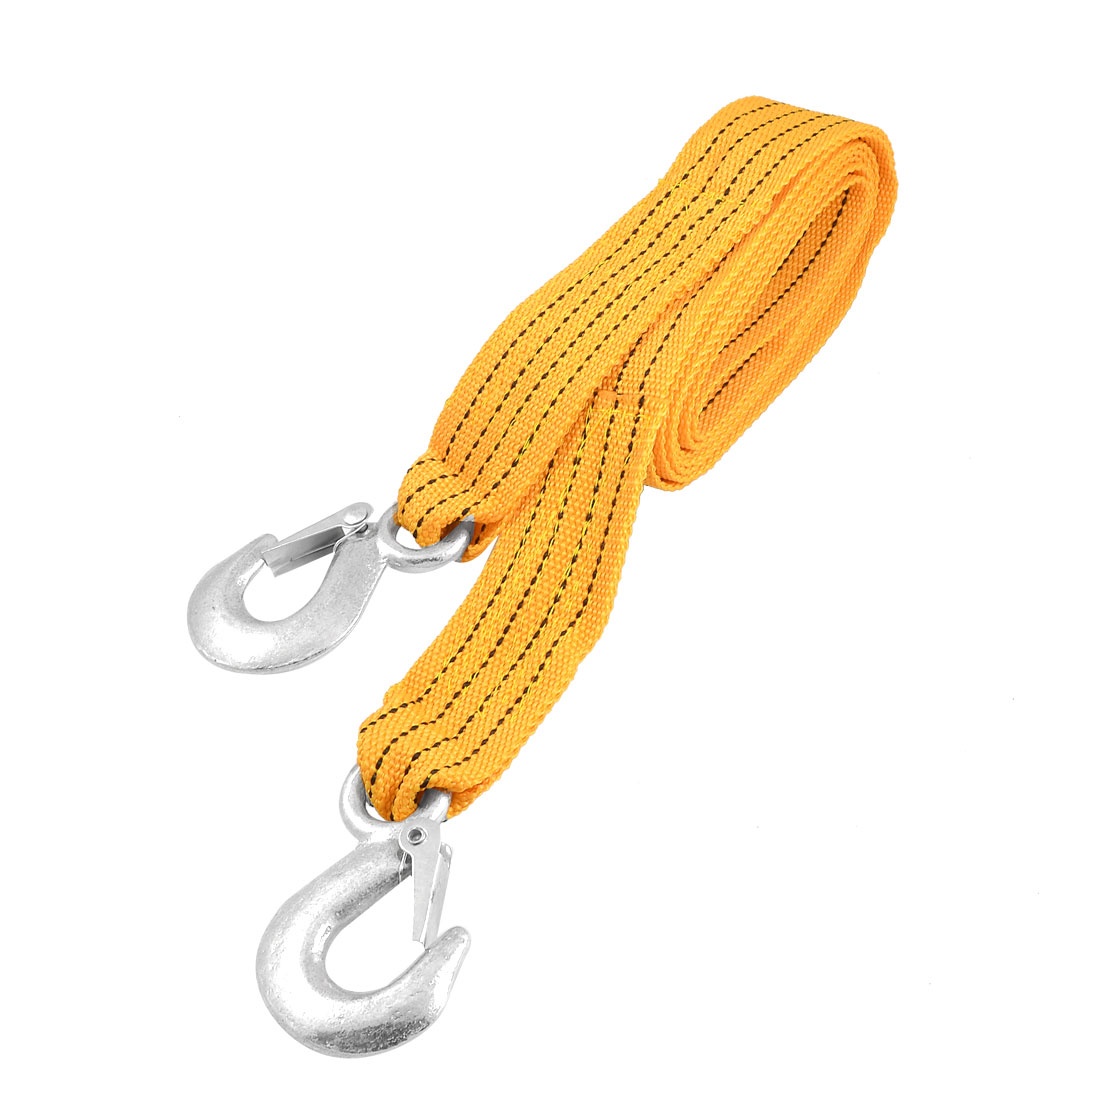 Car Forged Hook Ends Orange Nylon 3 Ton Towing Strap Belt 2.6M